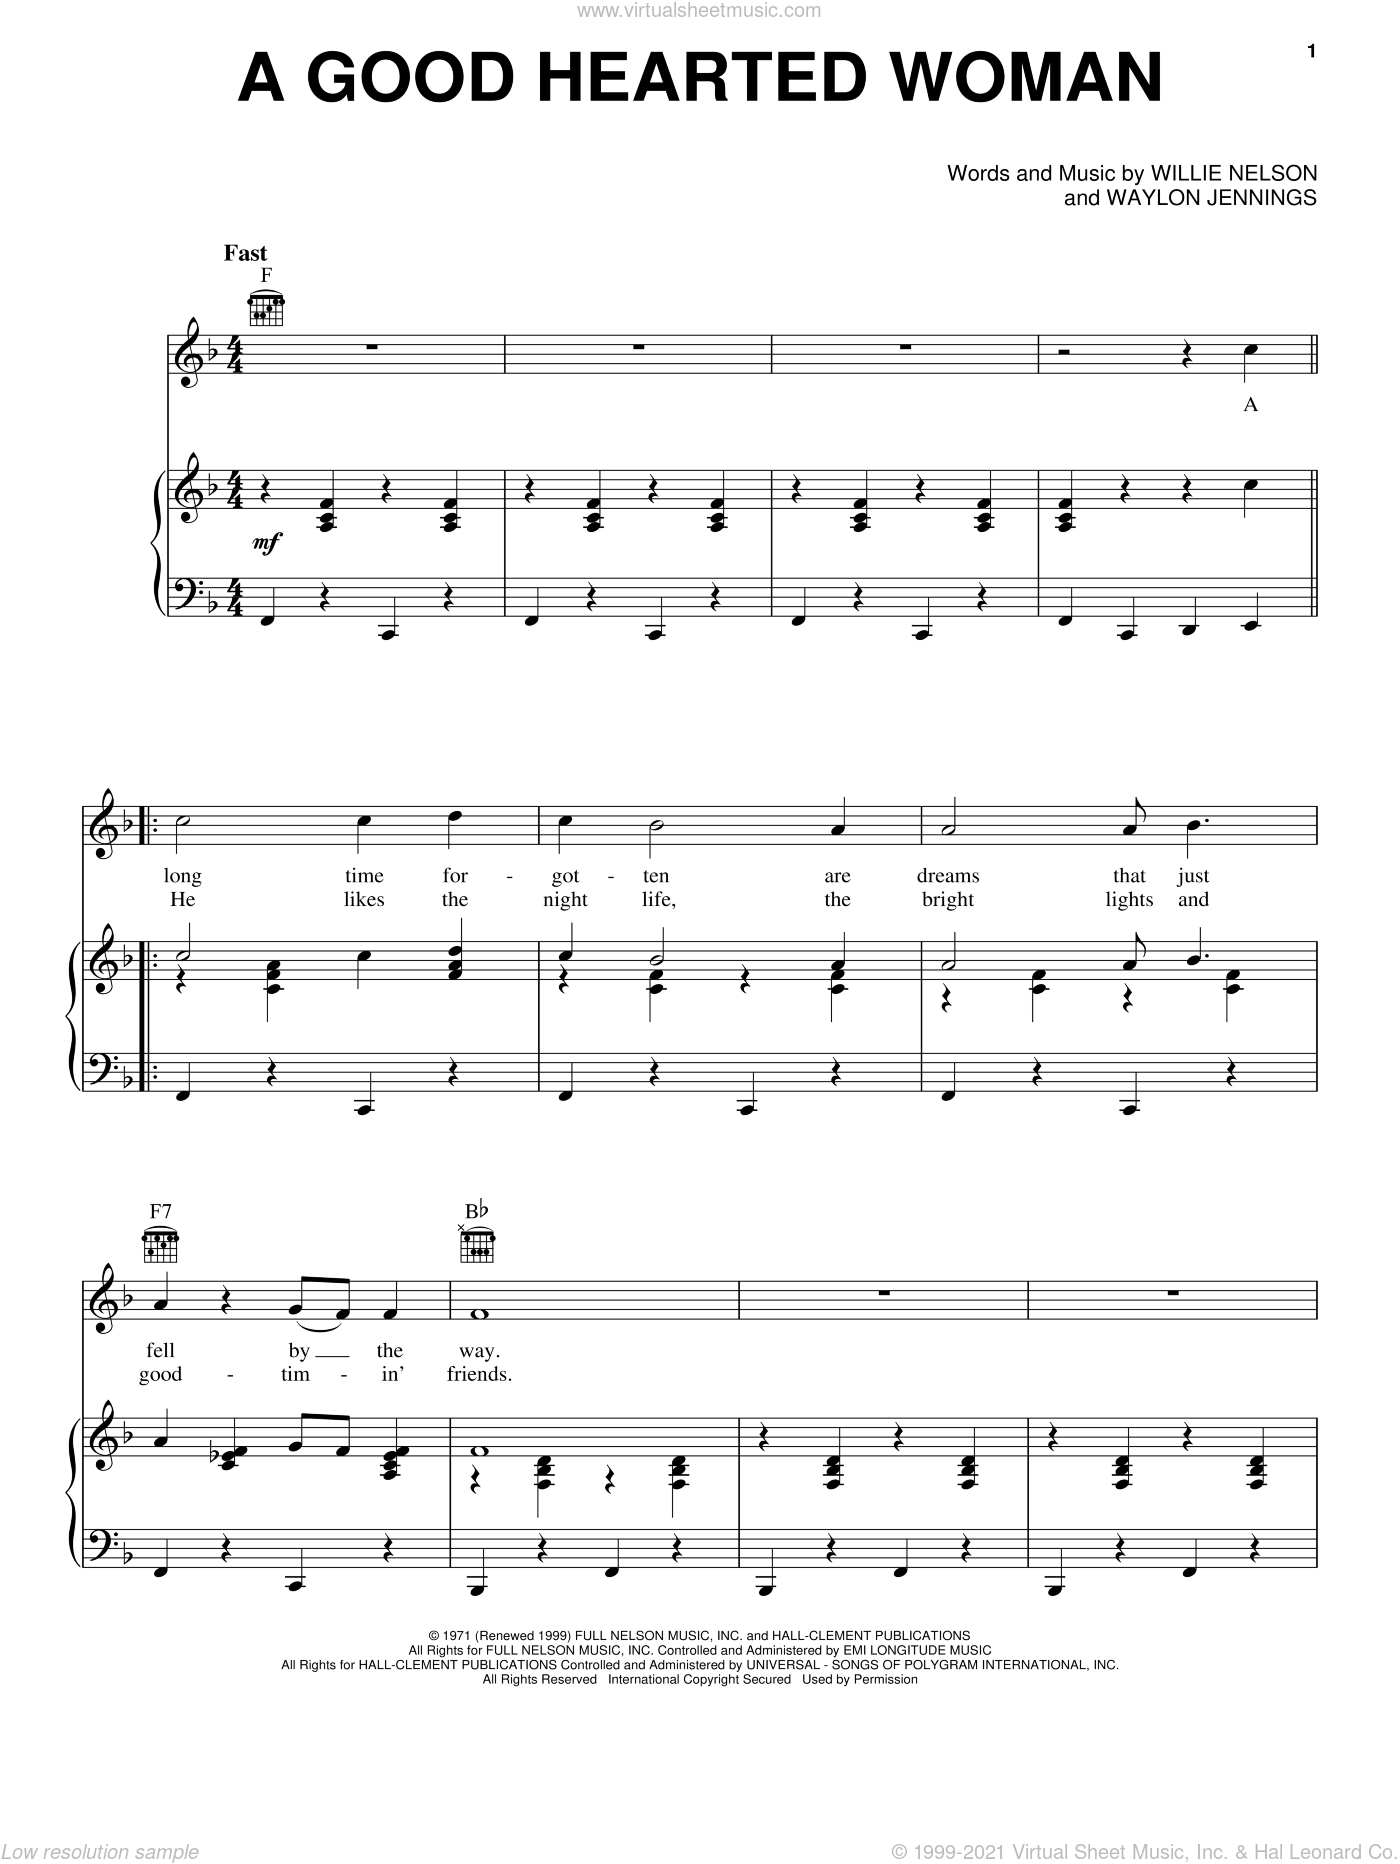 A Good Hearted Woman sheet music for voice, piano or guitar by Willie Nelson